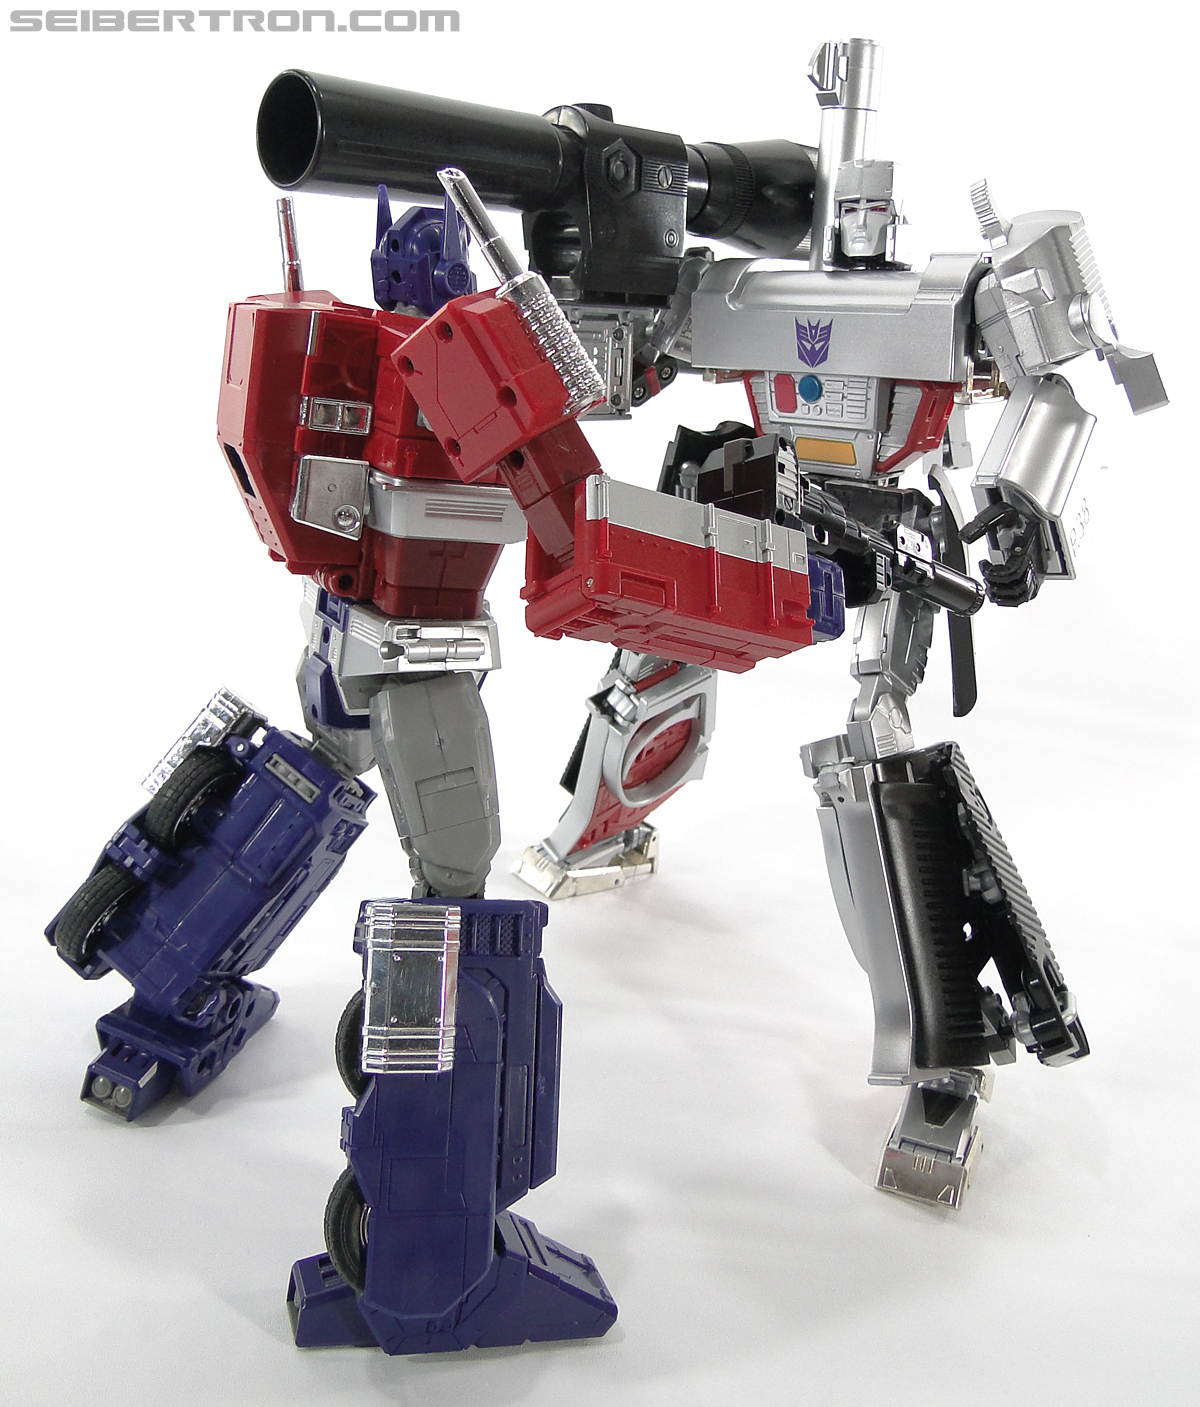 Transformers Masterpiece Optimus Prime (MP-10) (Convoy) (Image #407 of 429)